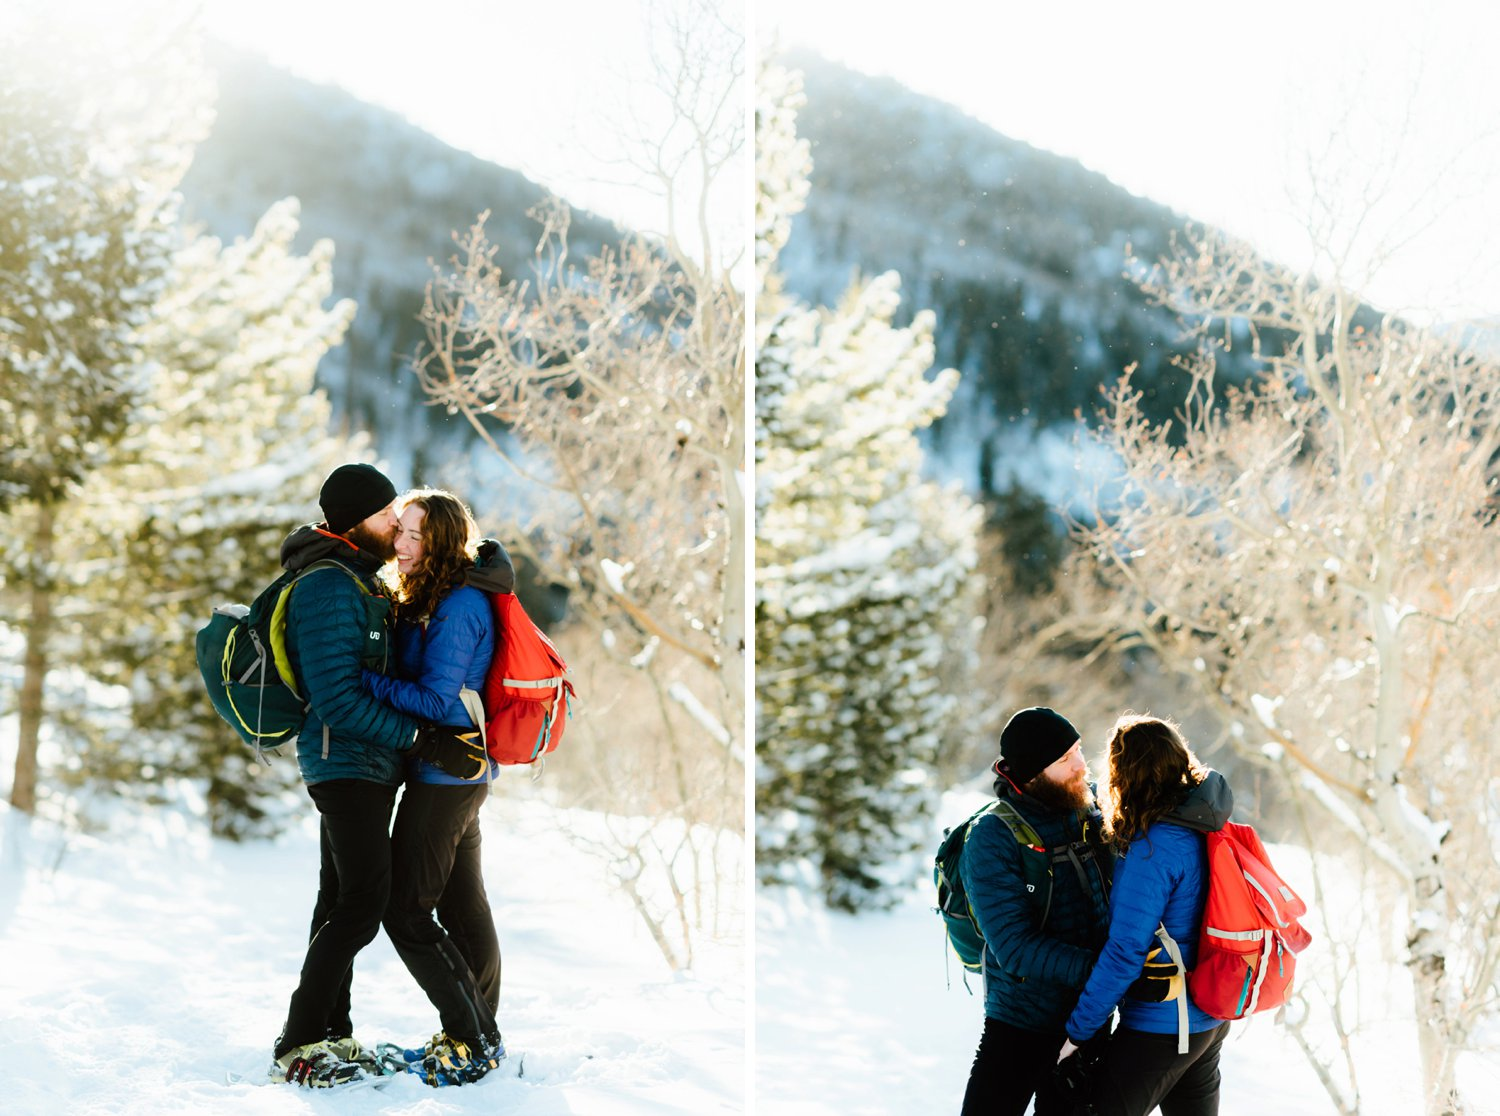 This happy couple is celebrating their engagement by spending a day snowshoeing through the Rocky Mountains! I want to do a hiking engagement shoot with my new fiancé at Lose Lake in the Indian Peaks Wilderness Area!!| Snowshoeing engagement photos by adventurous Colorado engagement photographer, Maddie Mae.